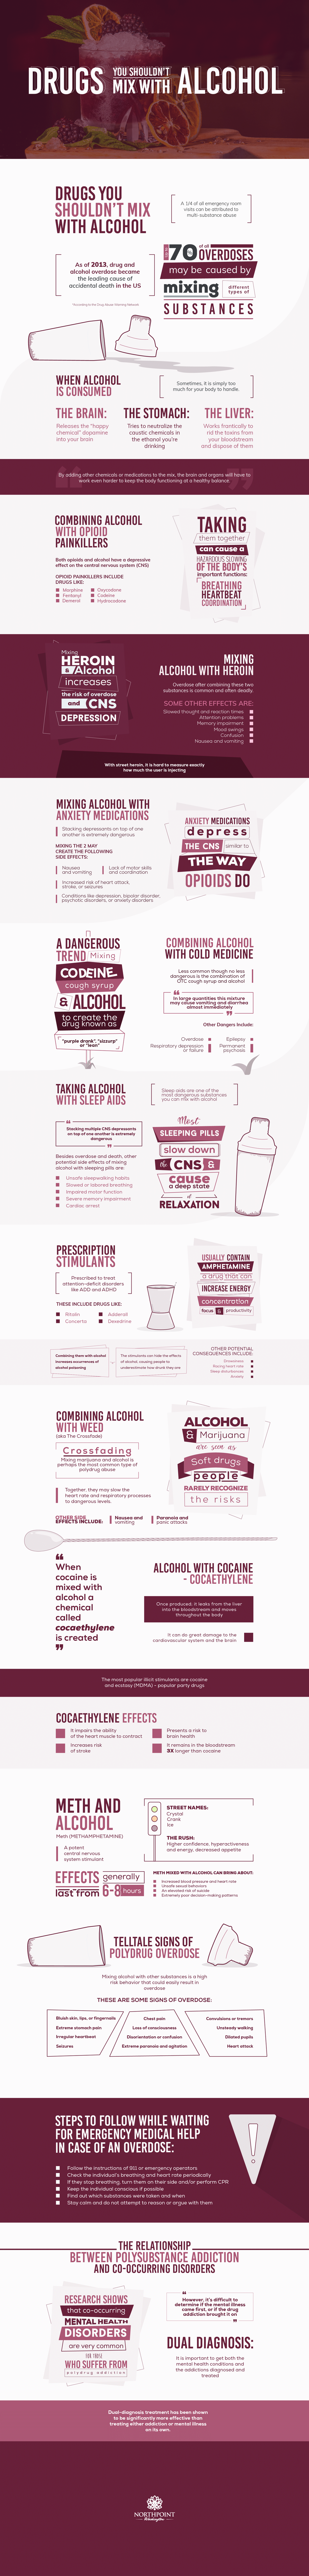 Polydrug Addiction: 20 Drugs You Don't Mix with Alcohol